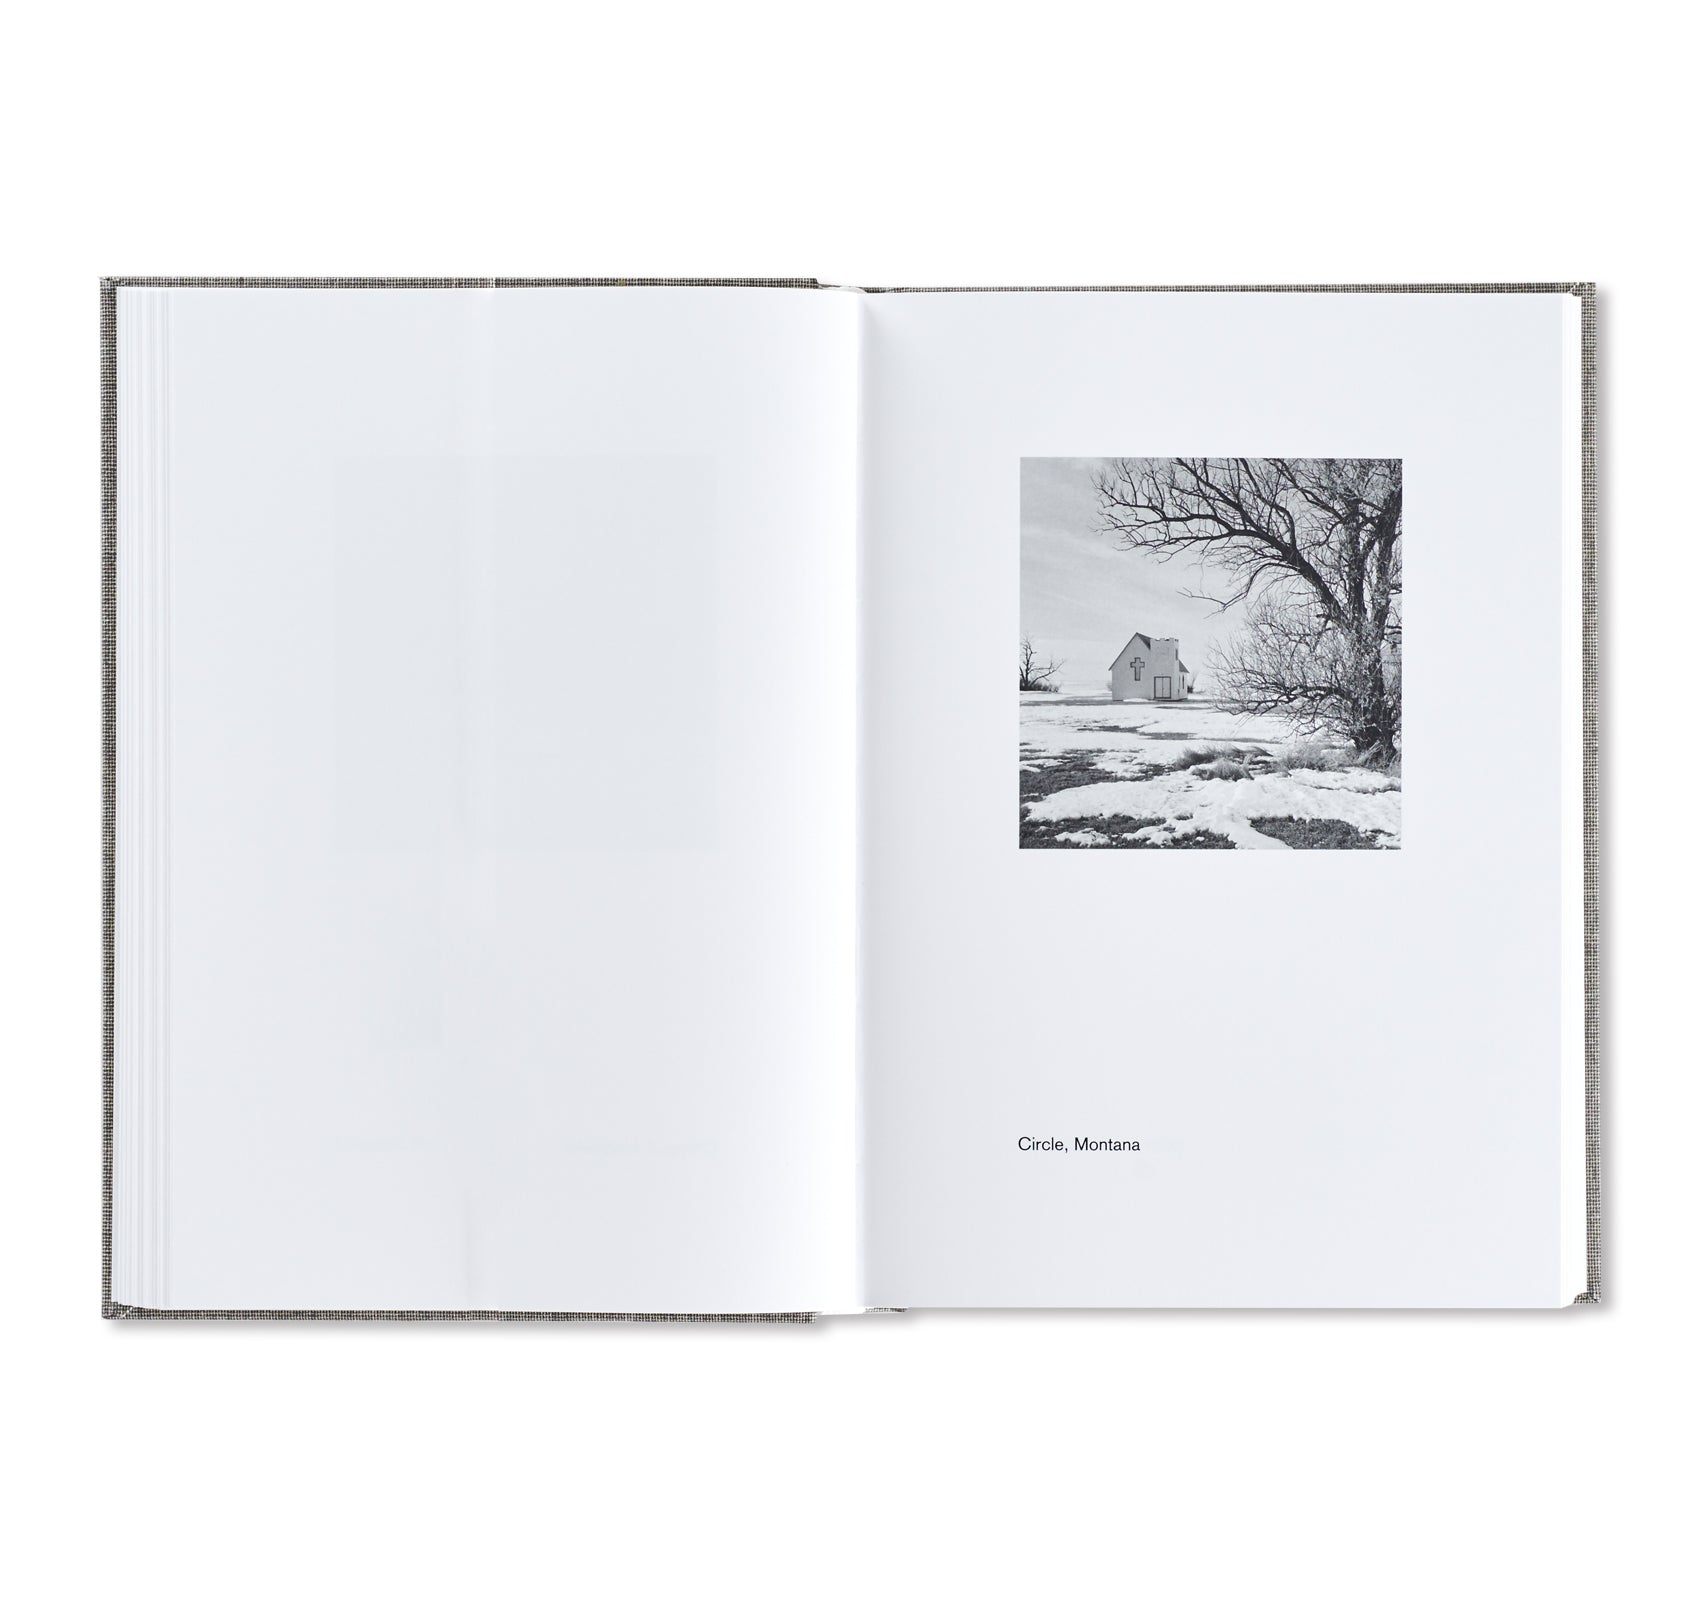 AMERICAN WINTER by Gerry Johansson [SIGNED]